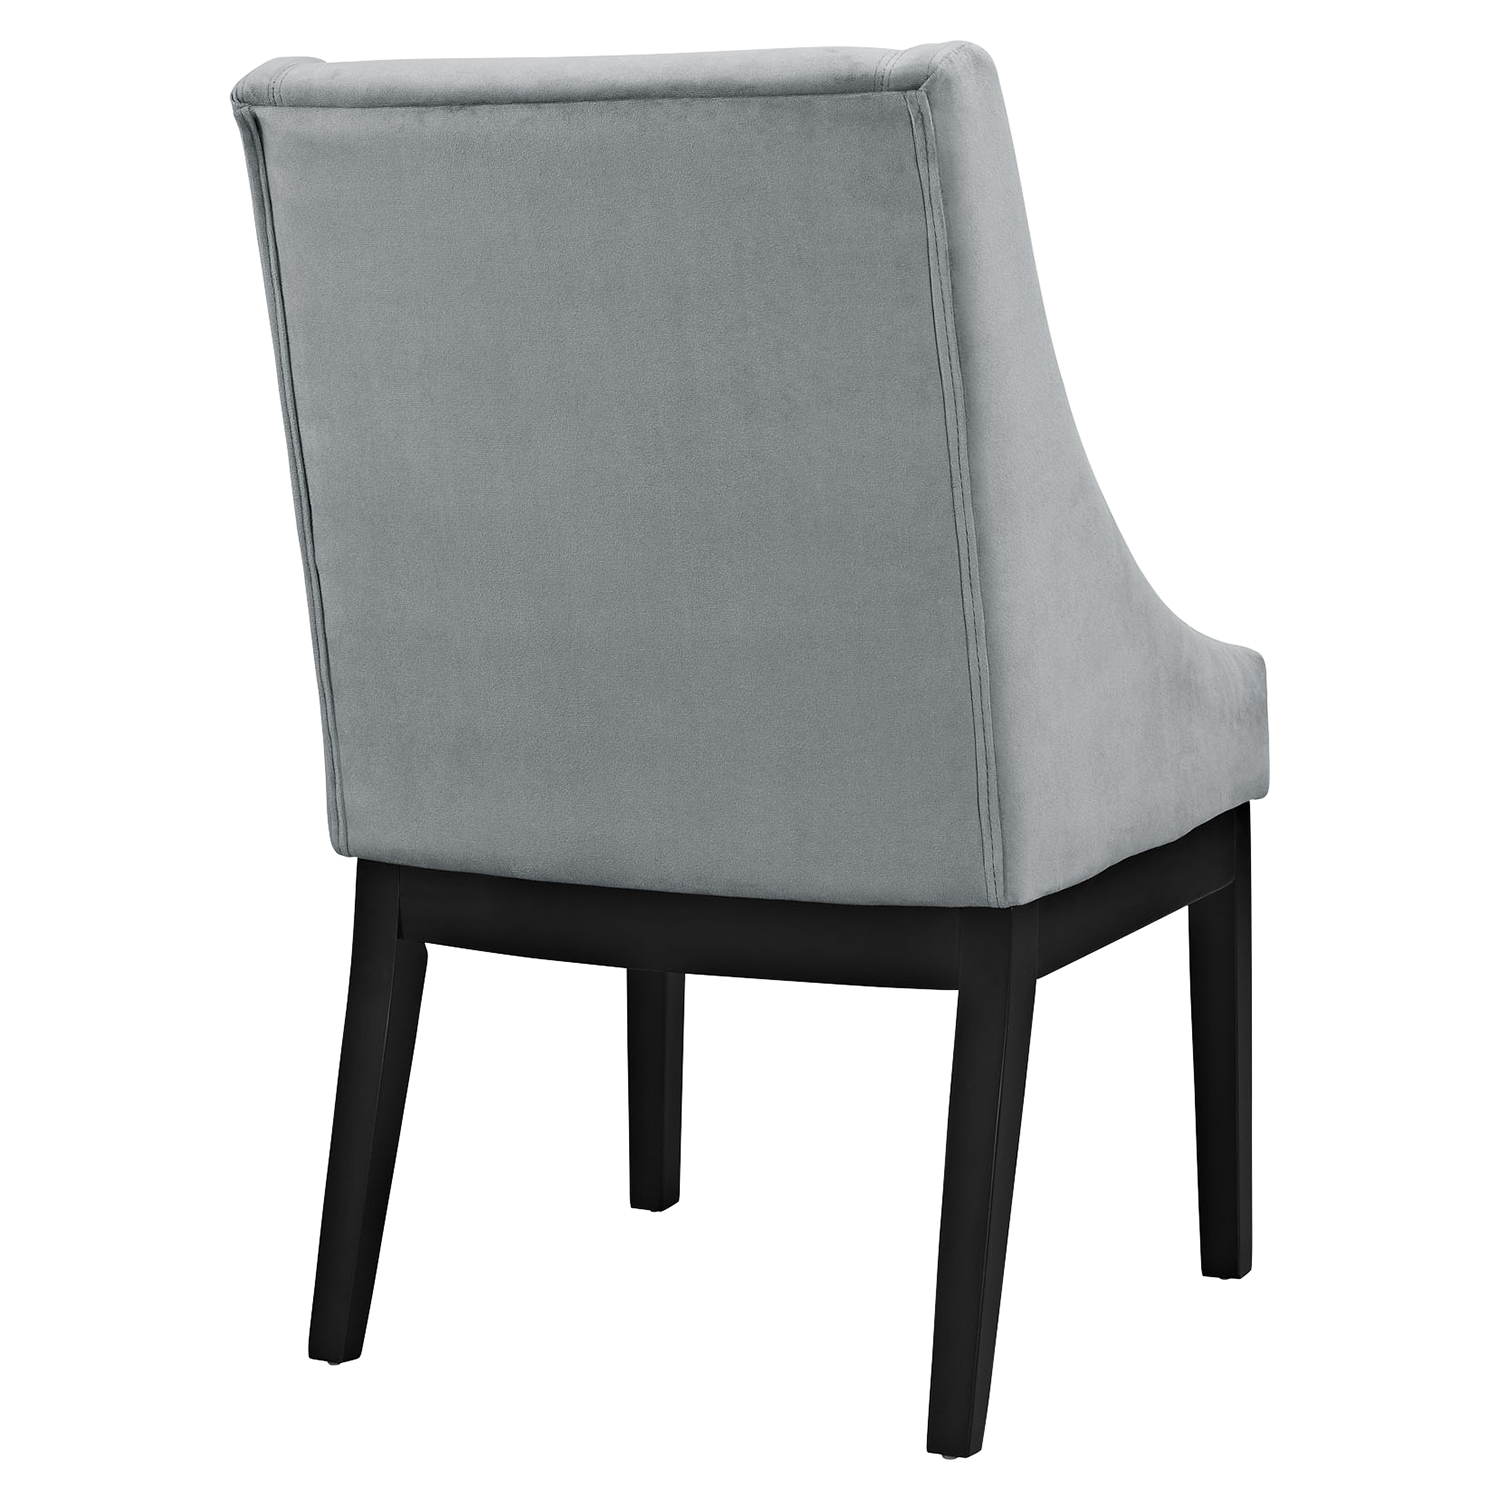 Tide Upholstery Side Chair - Wood Legs, Gray - EEI-1385-GRY